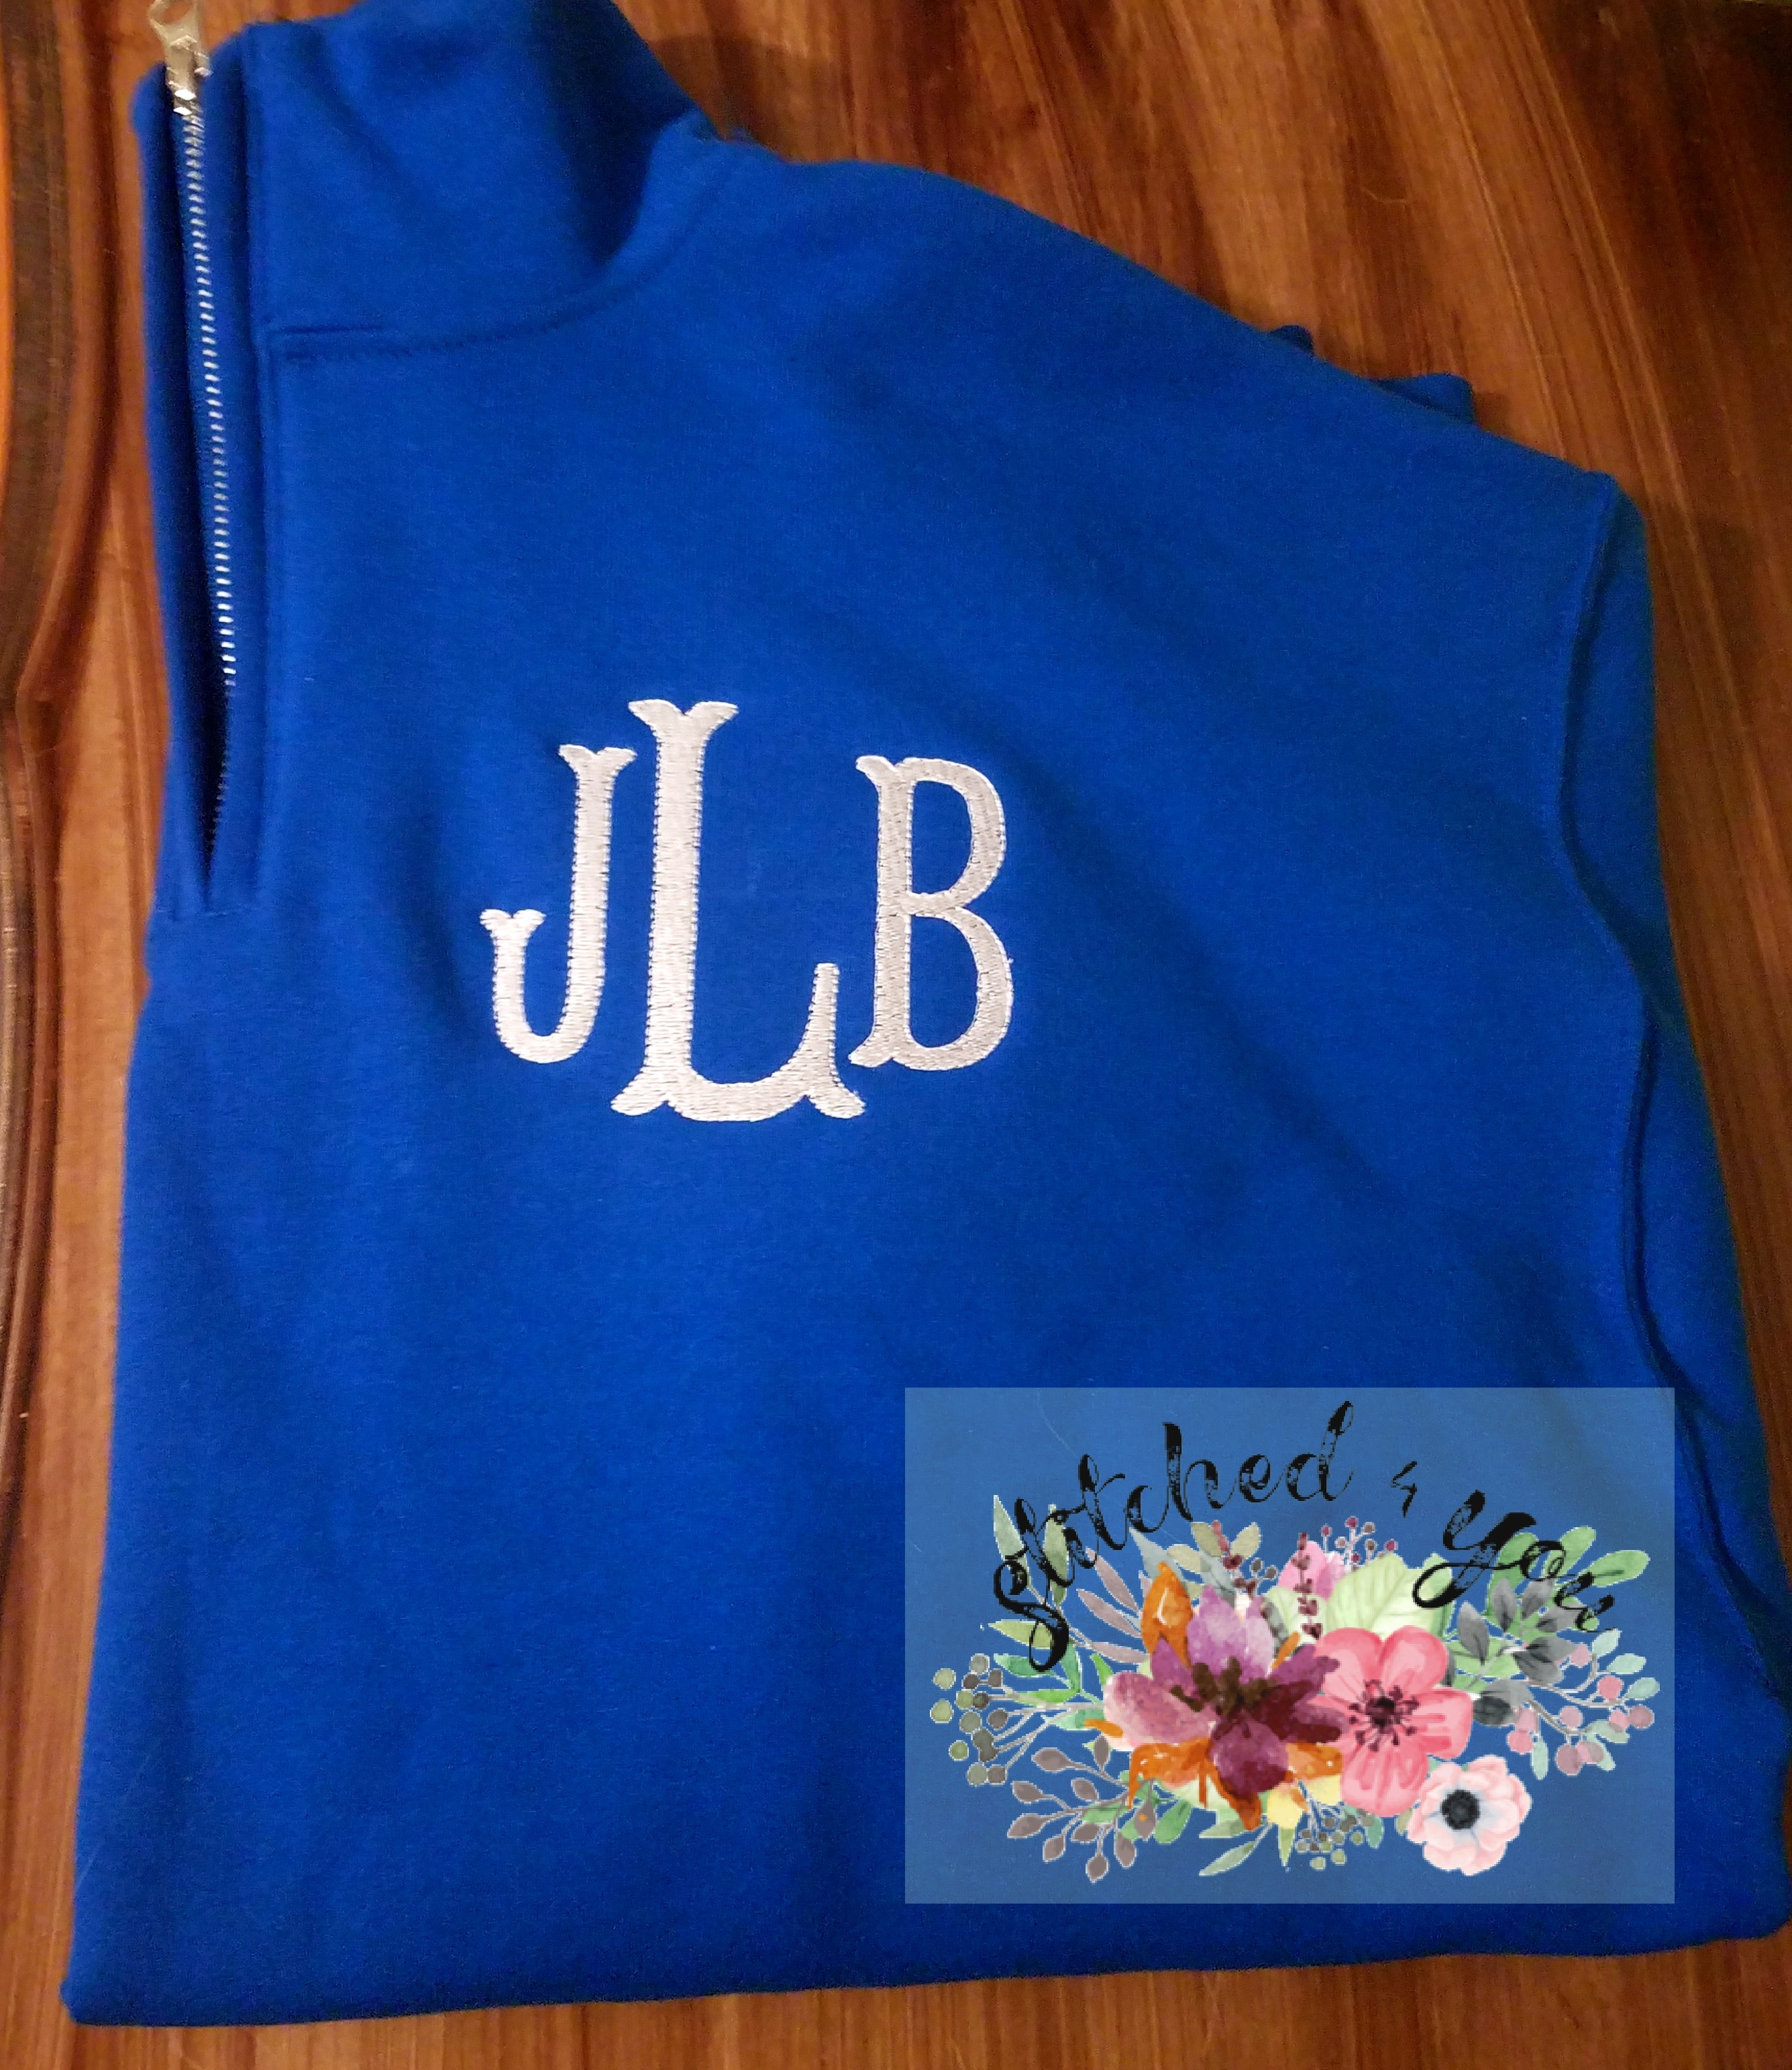 Jerzees 995M customer review by April Ledford Great pullover!